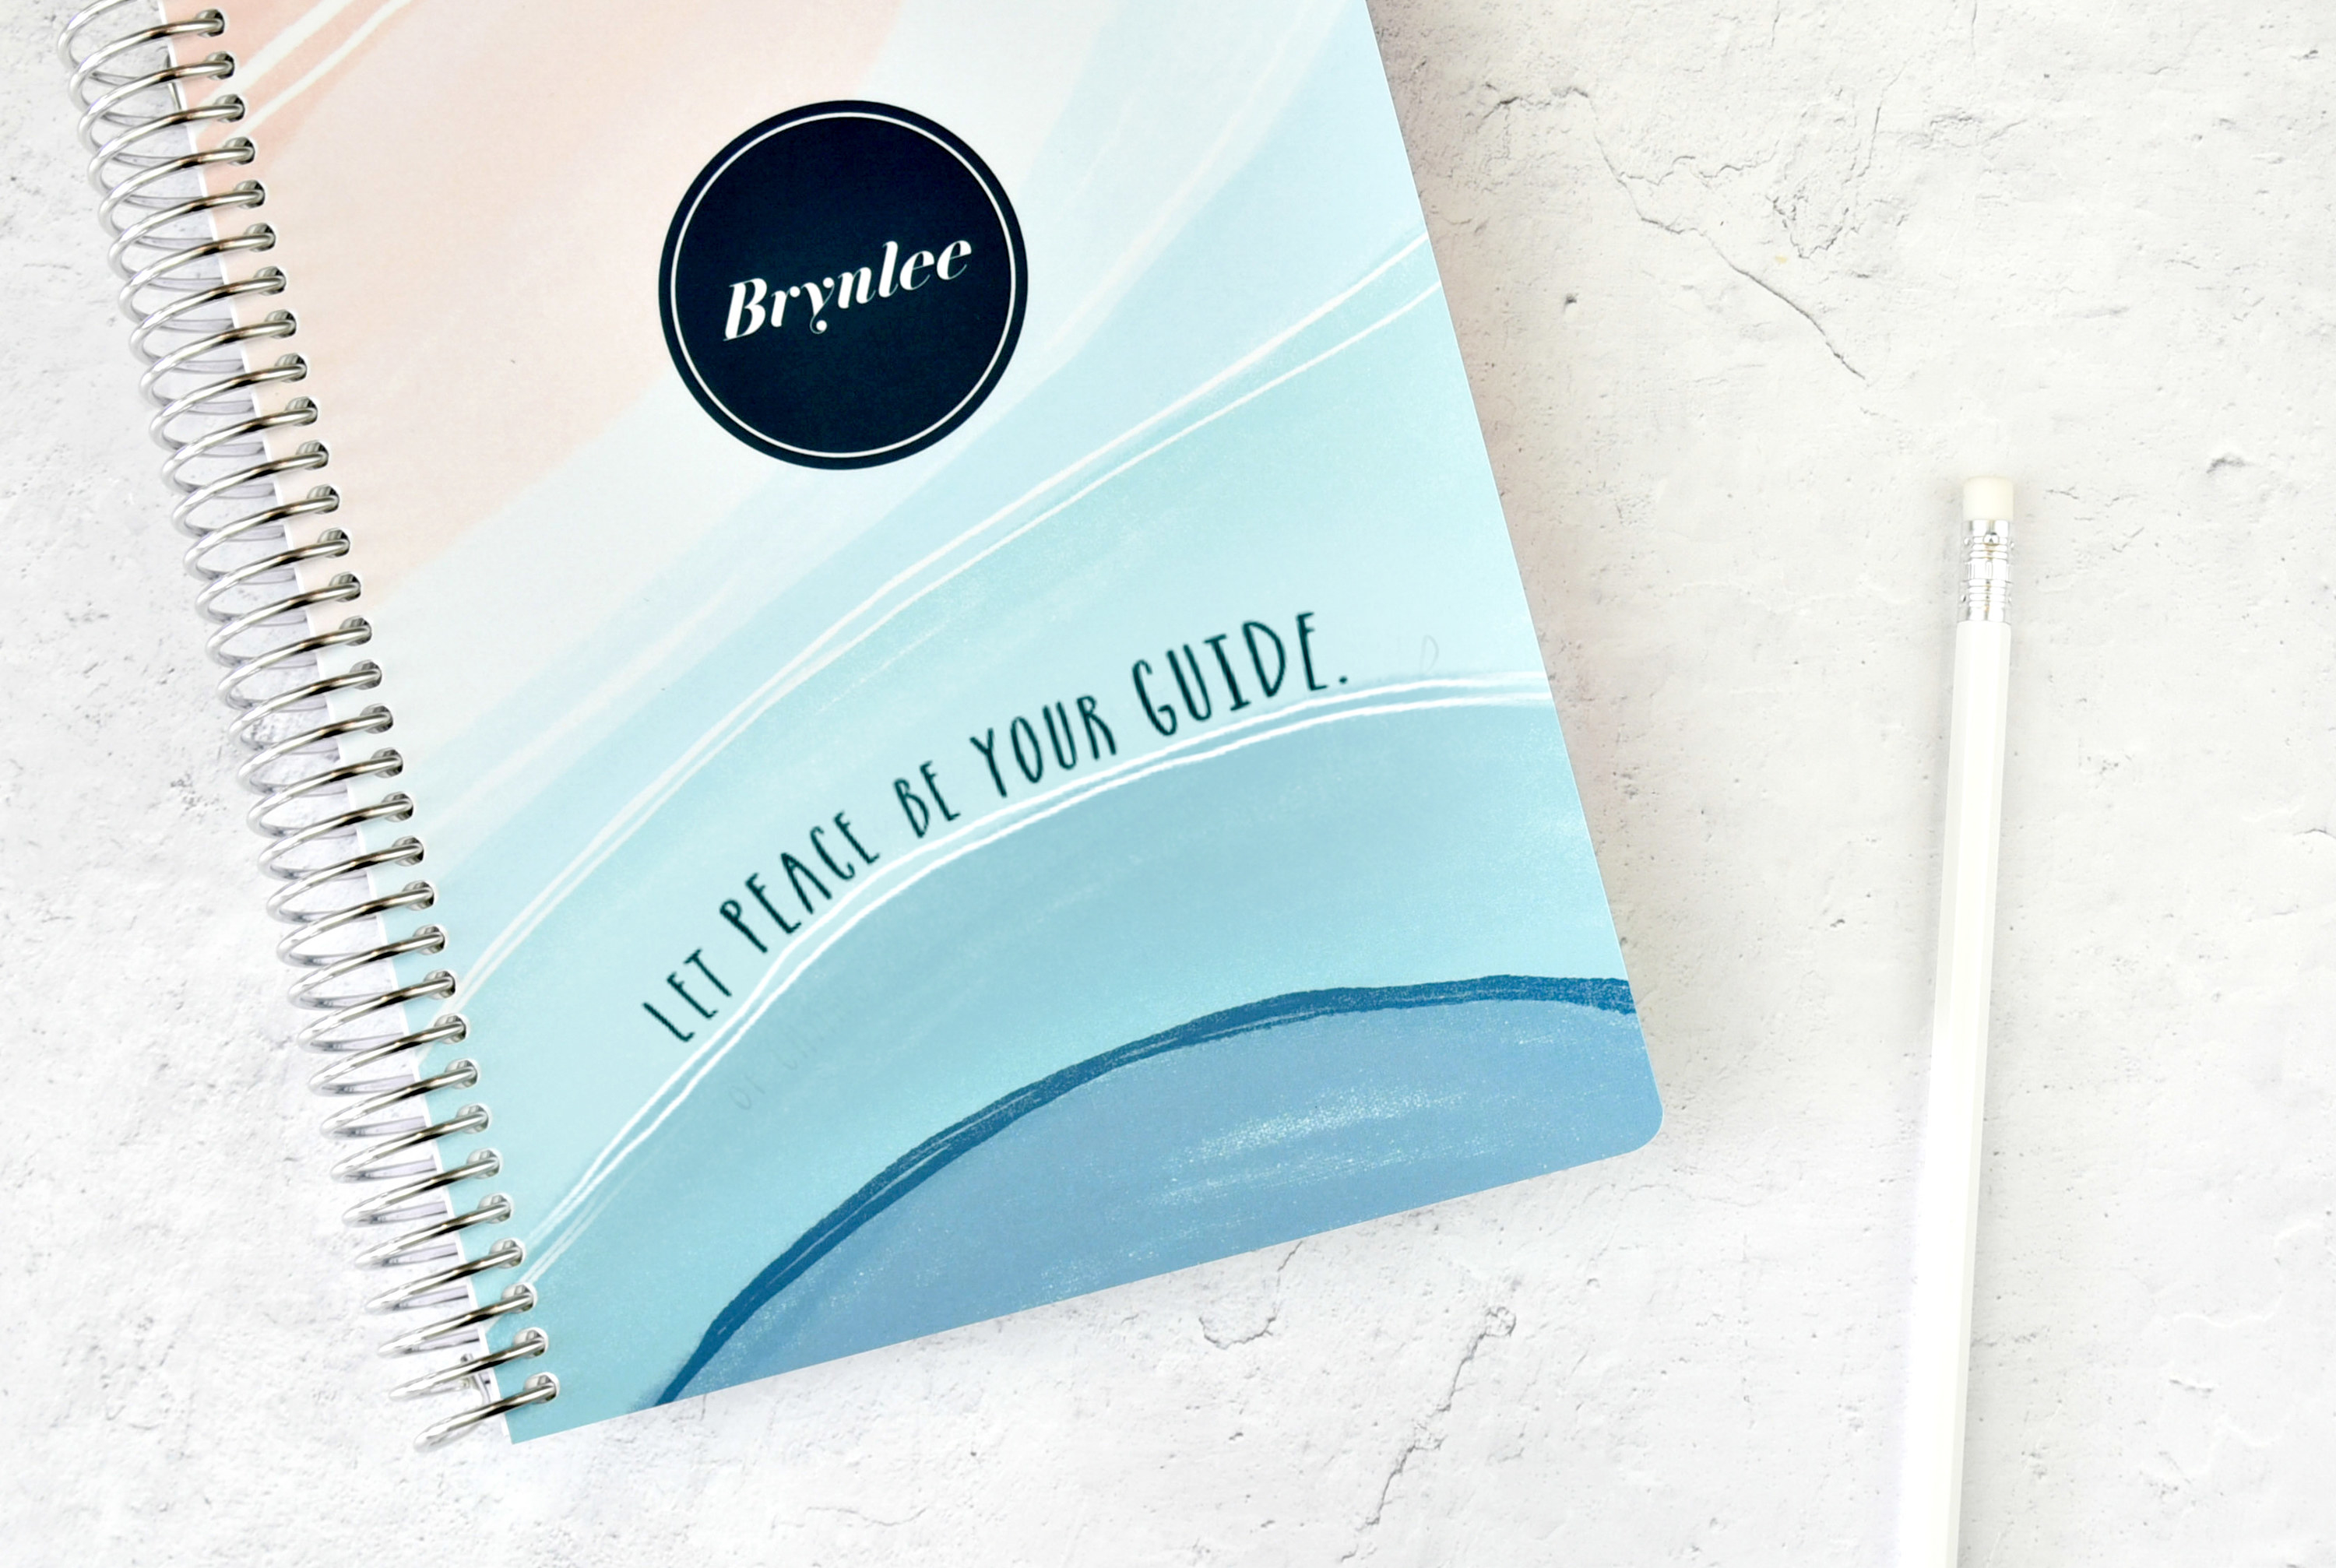 """A coiled planner with a badge that says """"Brynlee"""" and """"Let peace be your guide"""" sitting next to a pencil"""